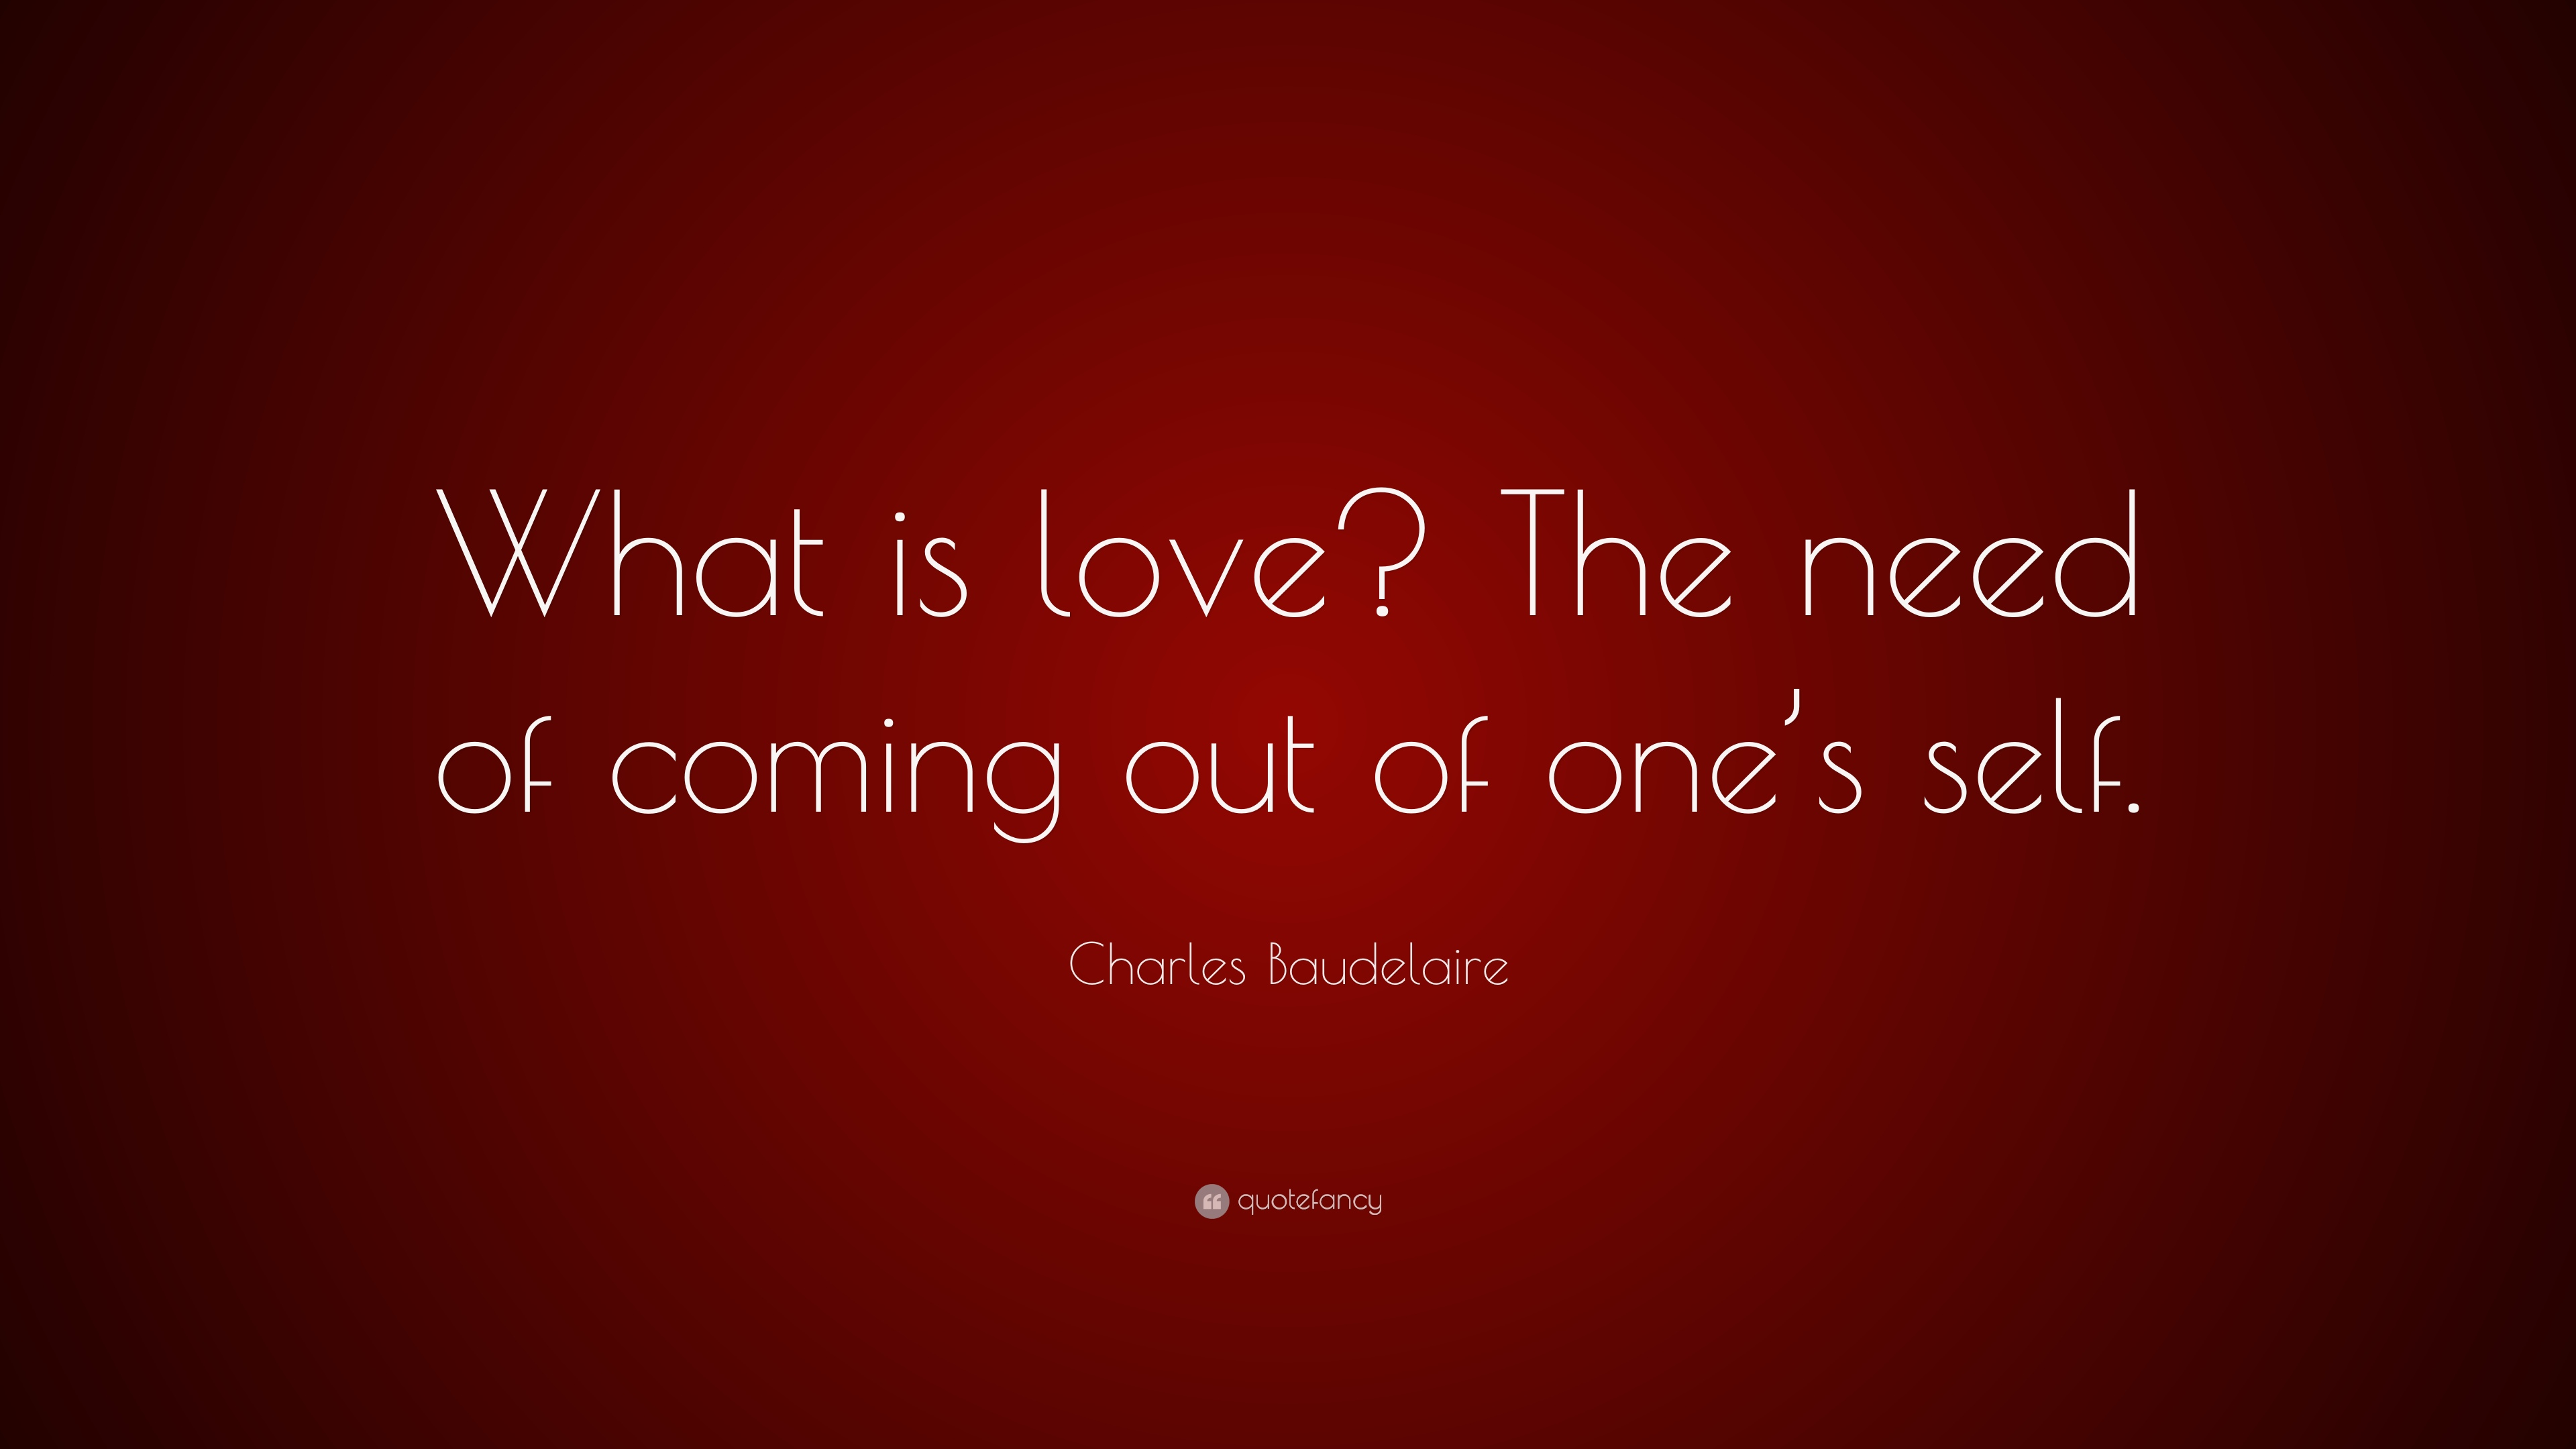 What Is Love Quotes Charles Baudelaire Love Quotes  The Best Love Quotes